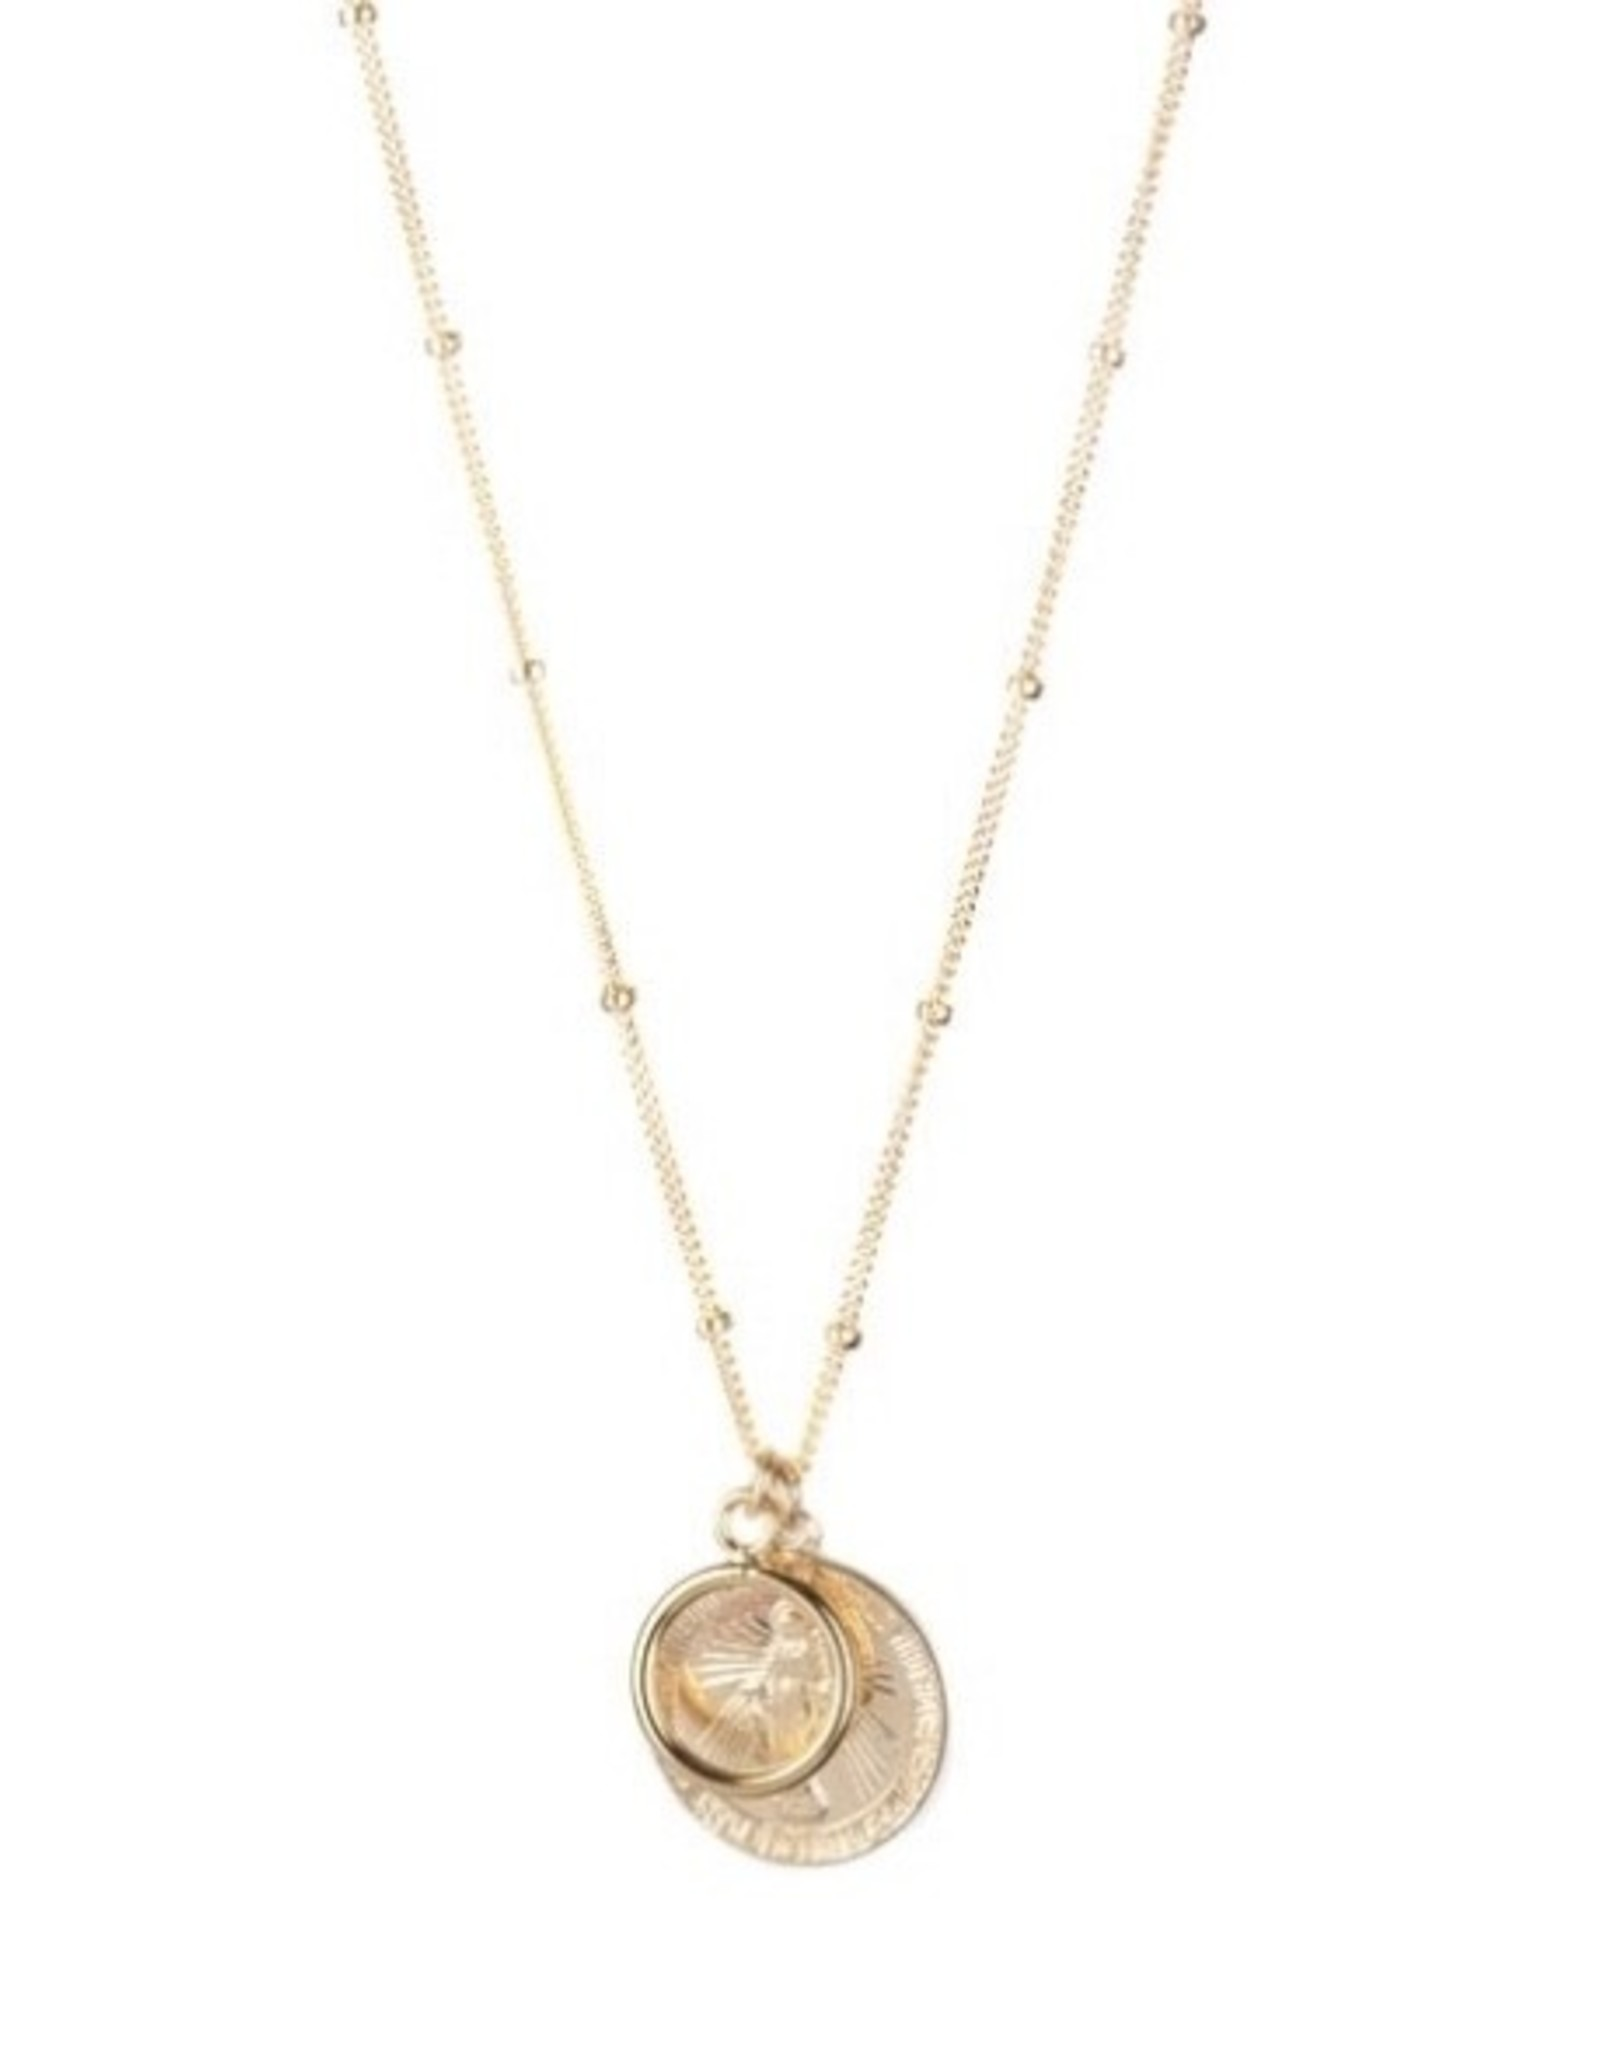 Lisbeth Cecile Necklace,14K gold fill